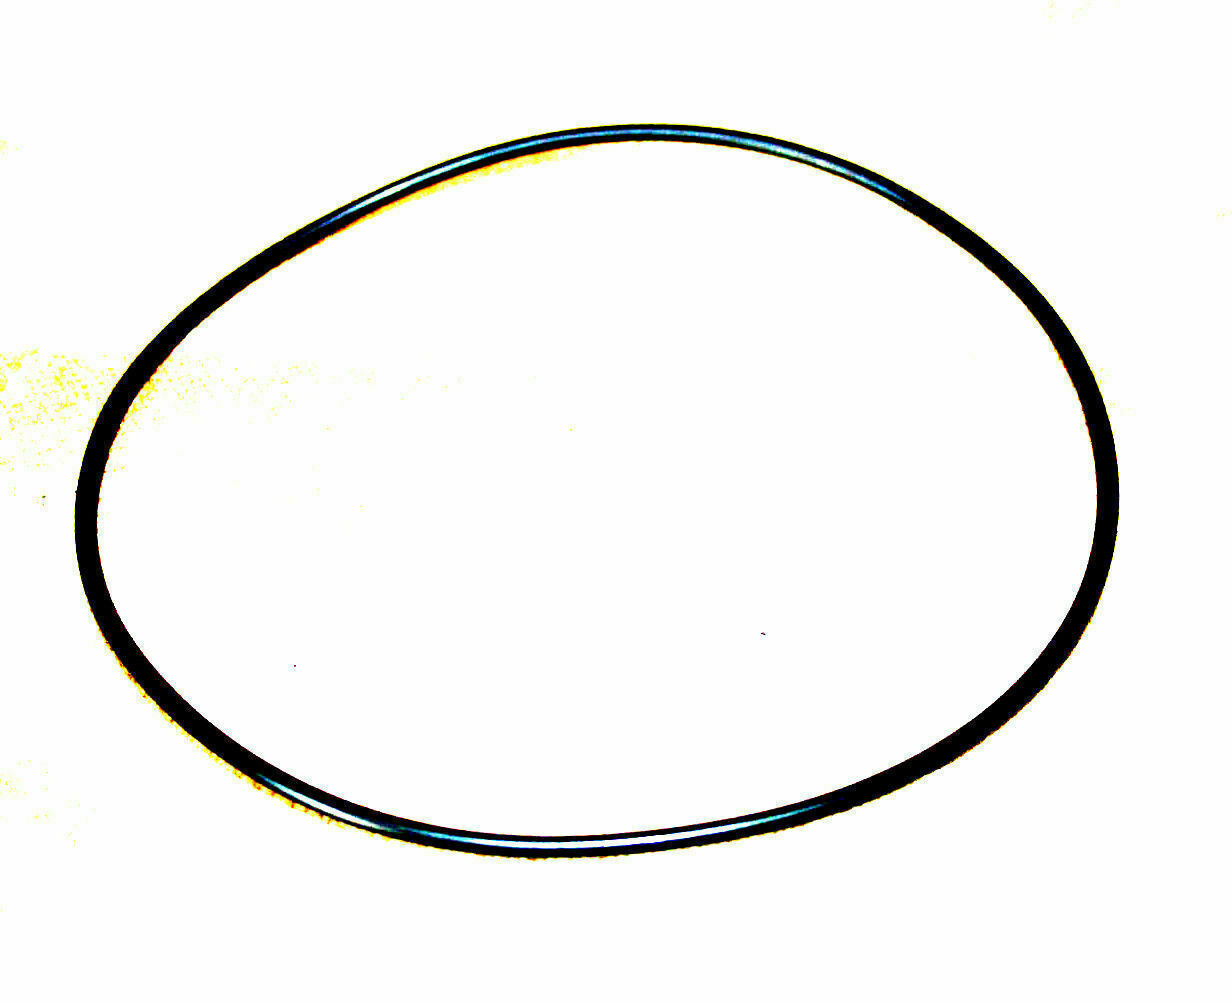 Primary image for *New Replacement* Round Drive Belt MAYTAG DRYER Mod DE50 PN WPY312512